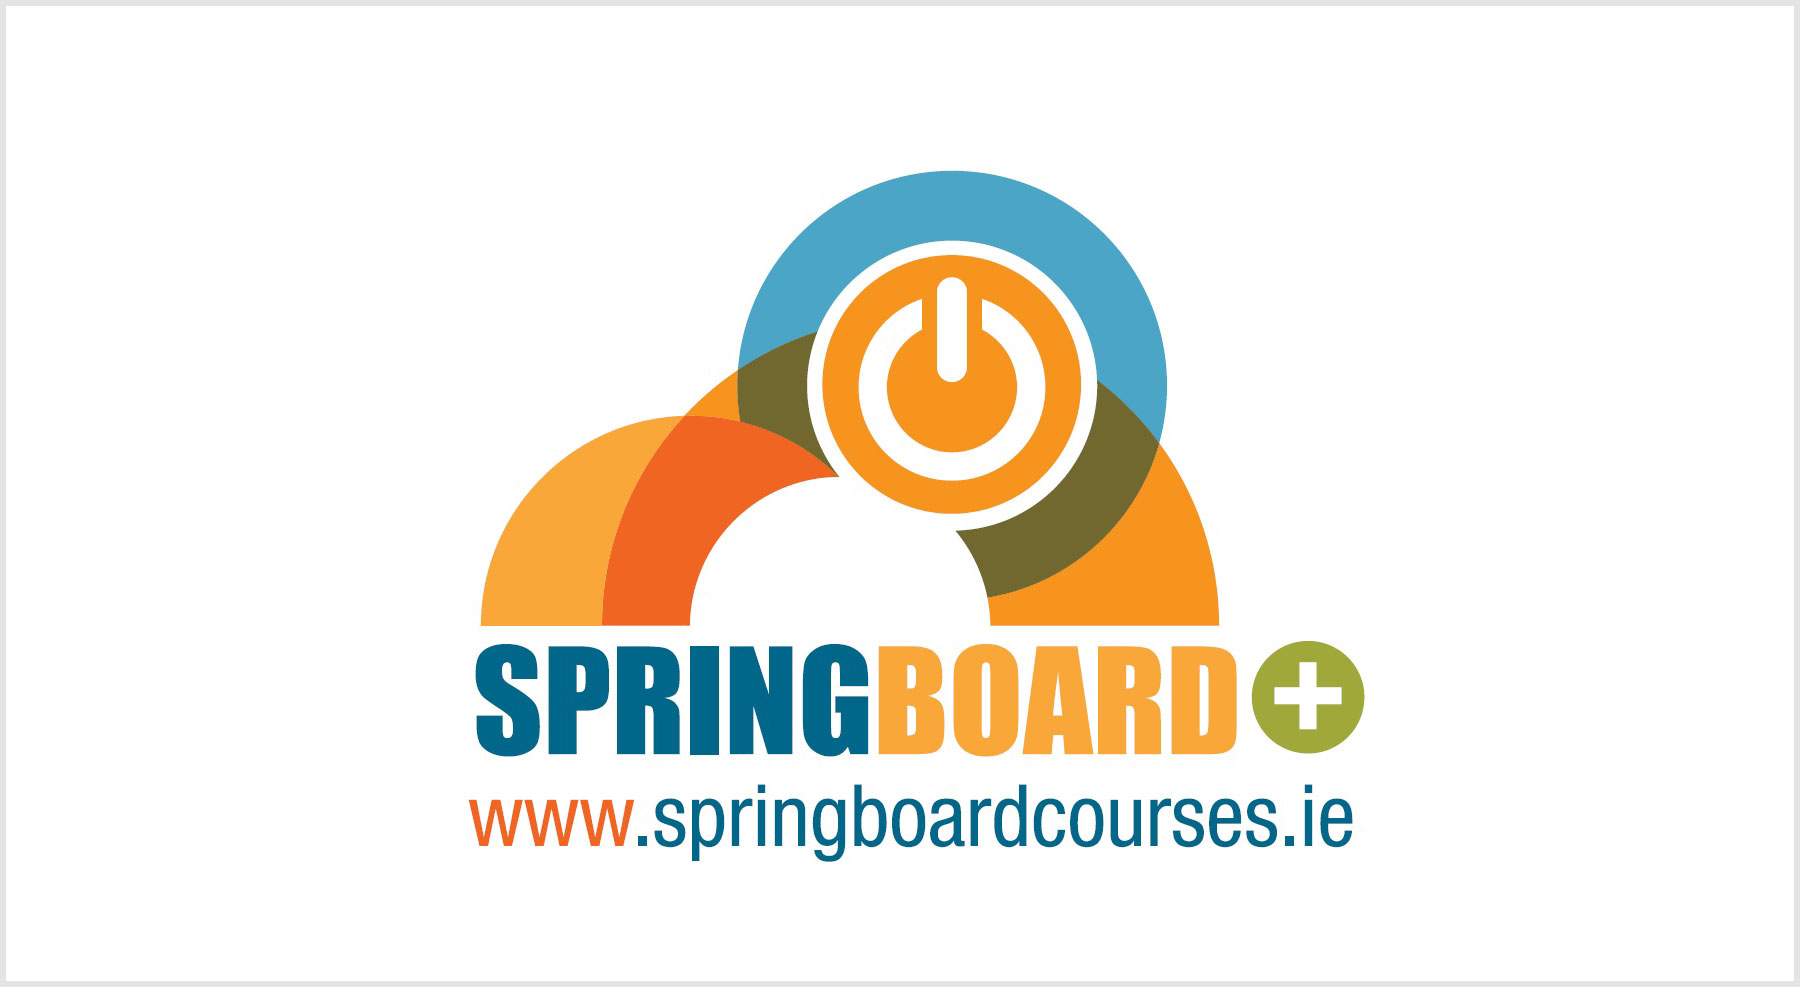 Springboard Courses at DkIT